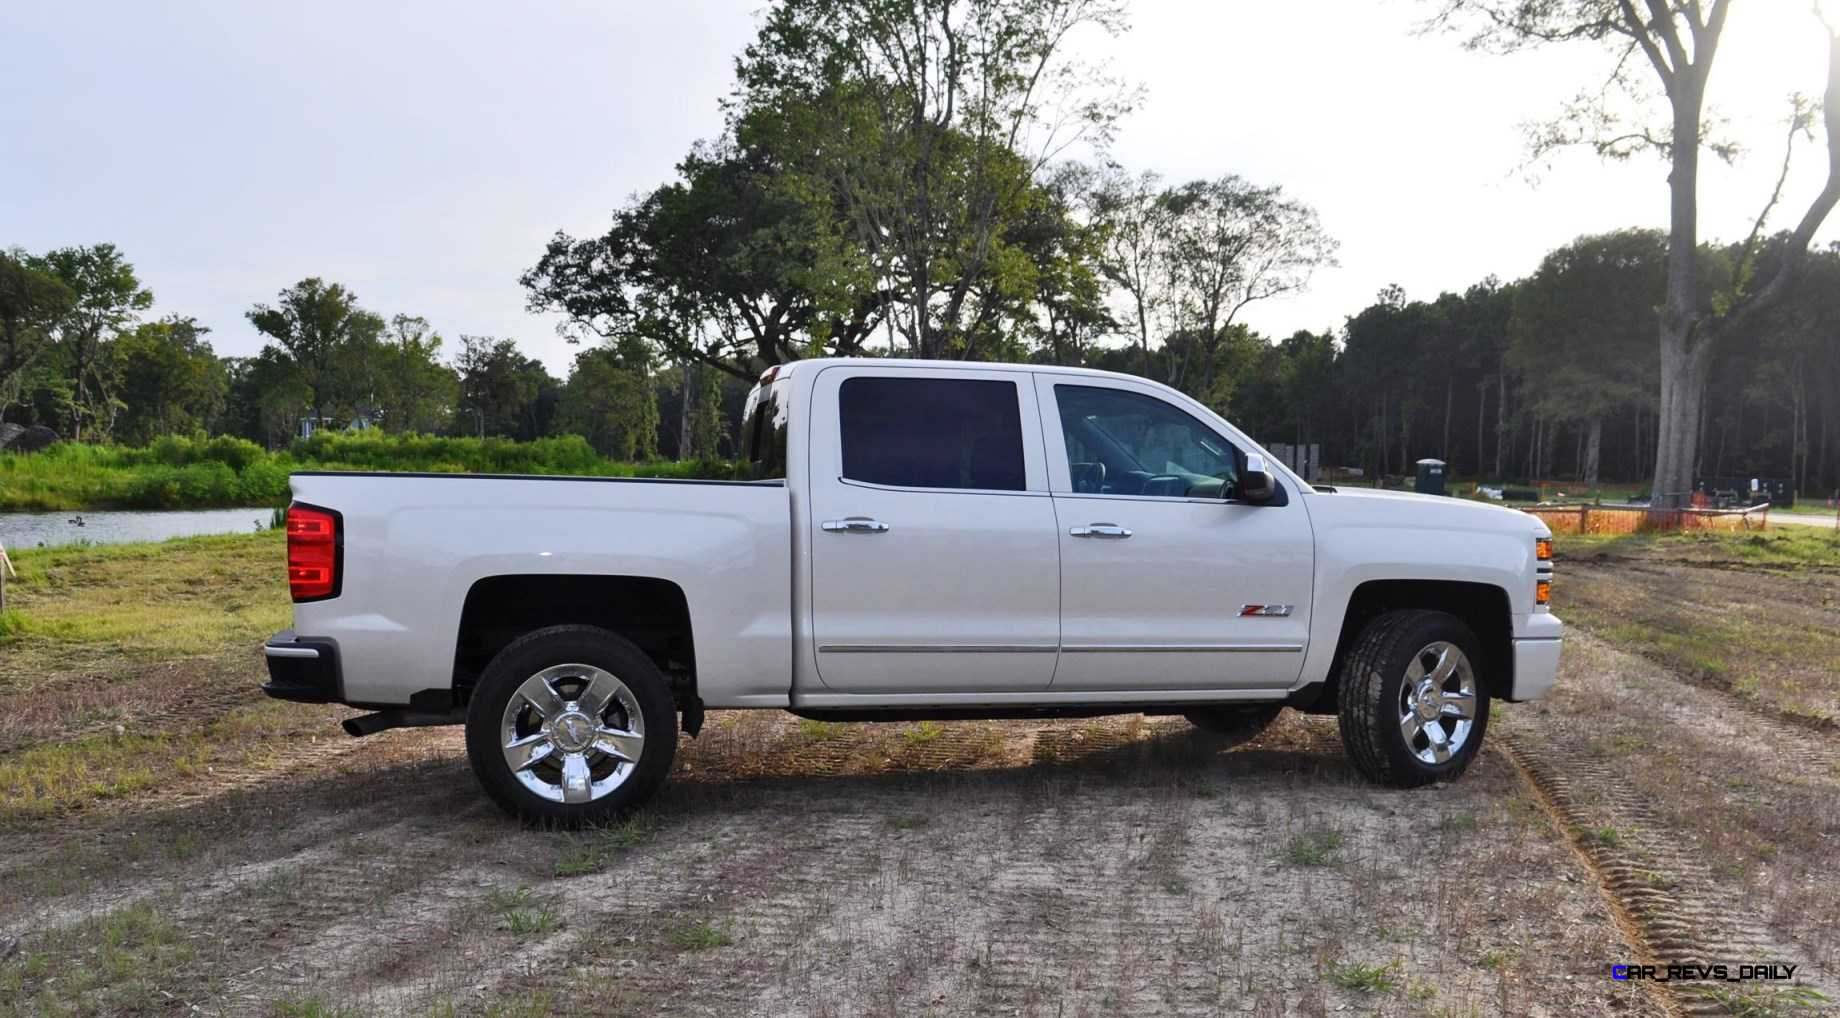 2015 chevrolet silverado ltz z71 4wd custom sport edition 26. Black Bedroom Furniture Sets. Home Design Ideas